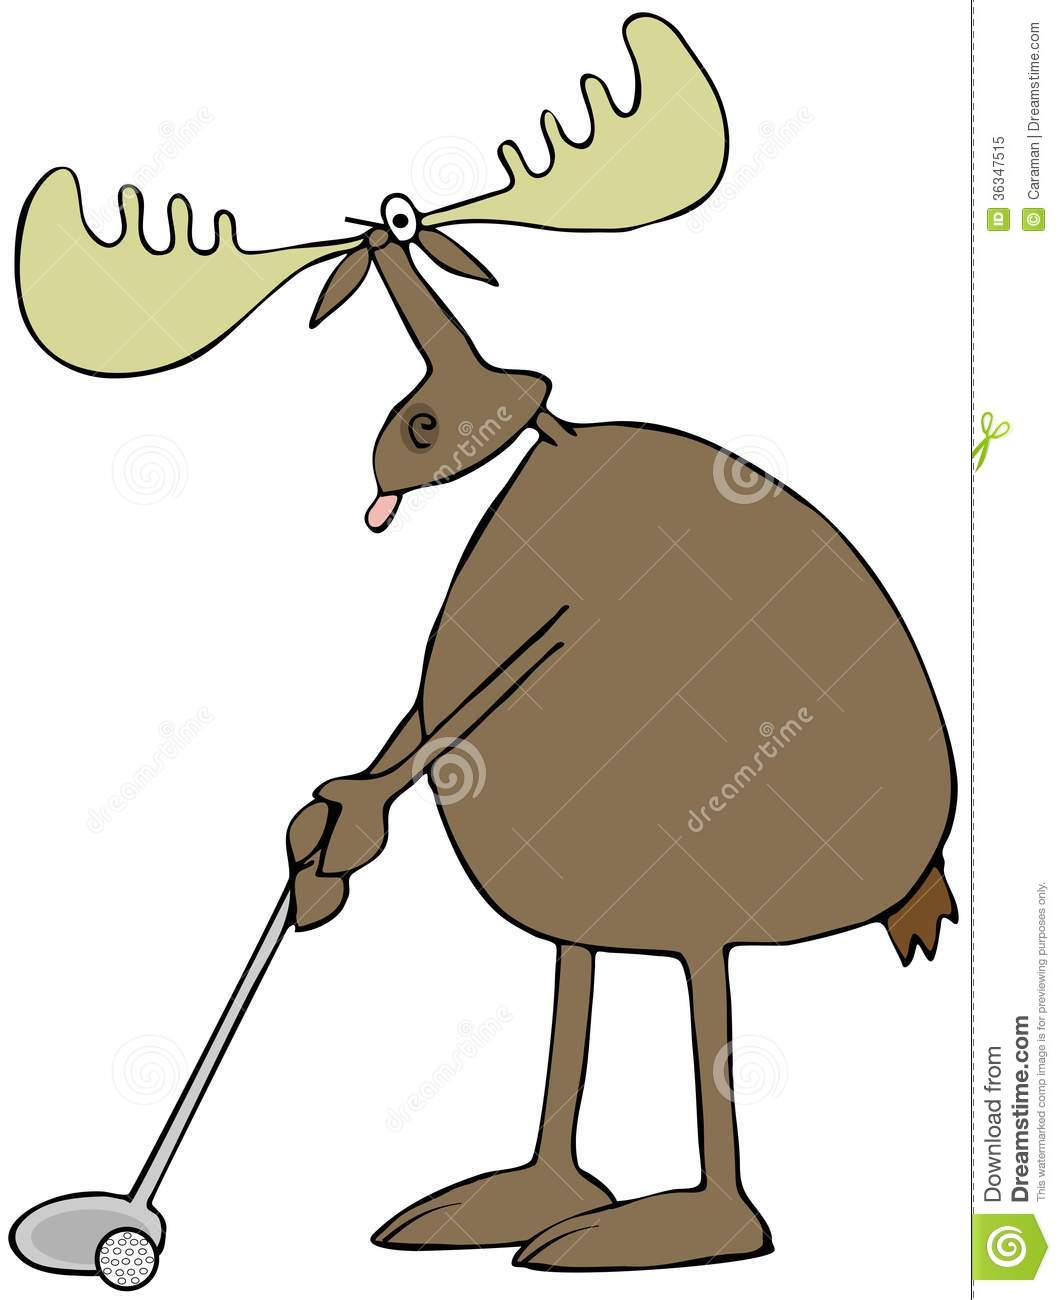 Golfing Moose Royalty Free Stock Photo - Image: 36347515 Golf Ball On Tee Clipart